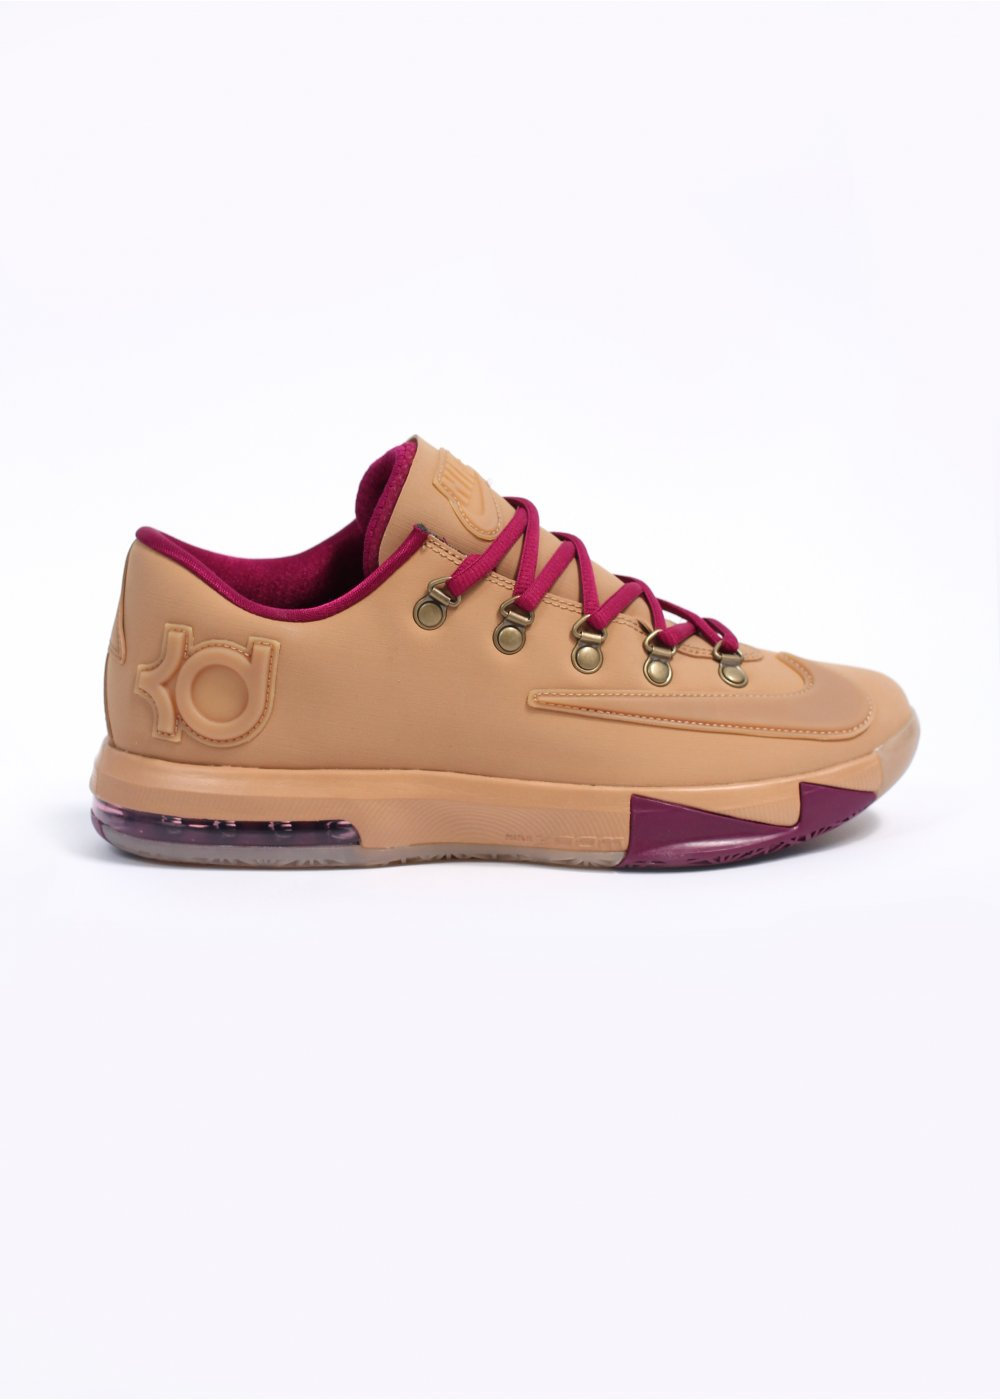 check out 60c4d eaa5b Kevin Durant KD VI EXT GUM QS Trainers - Gum Light Brown   Raspberry